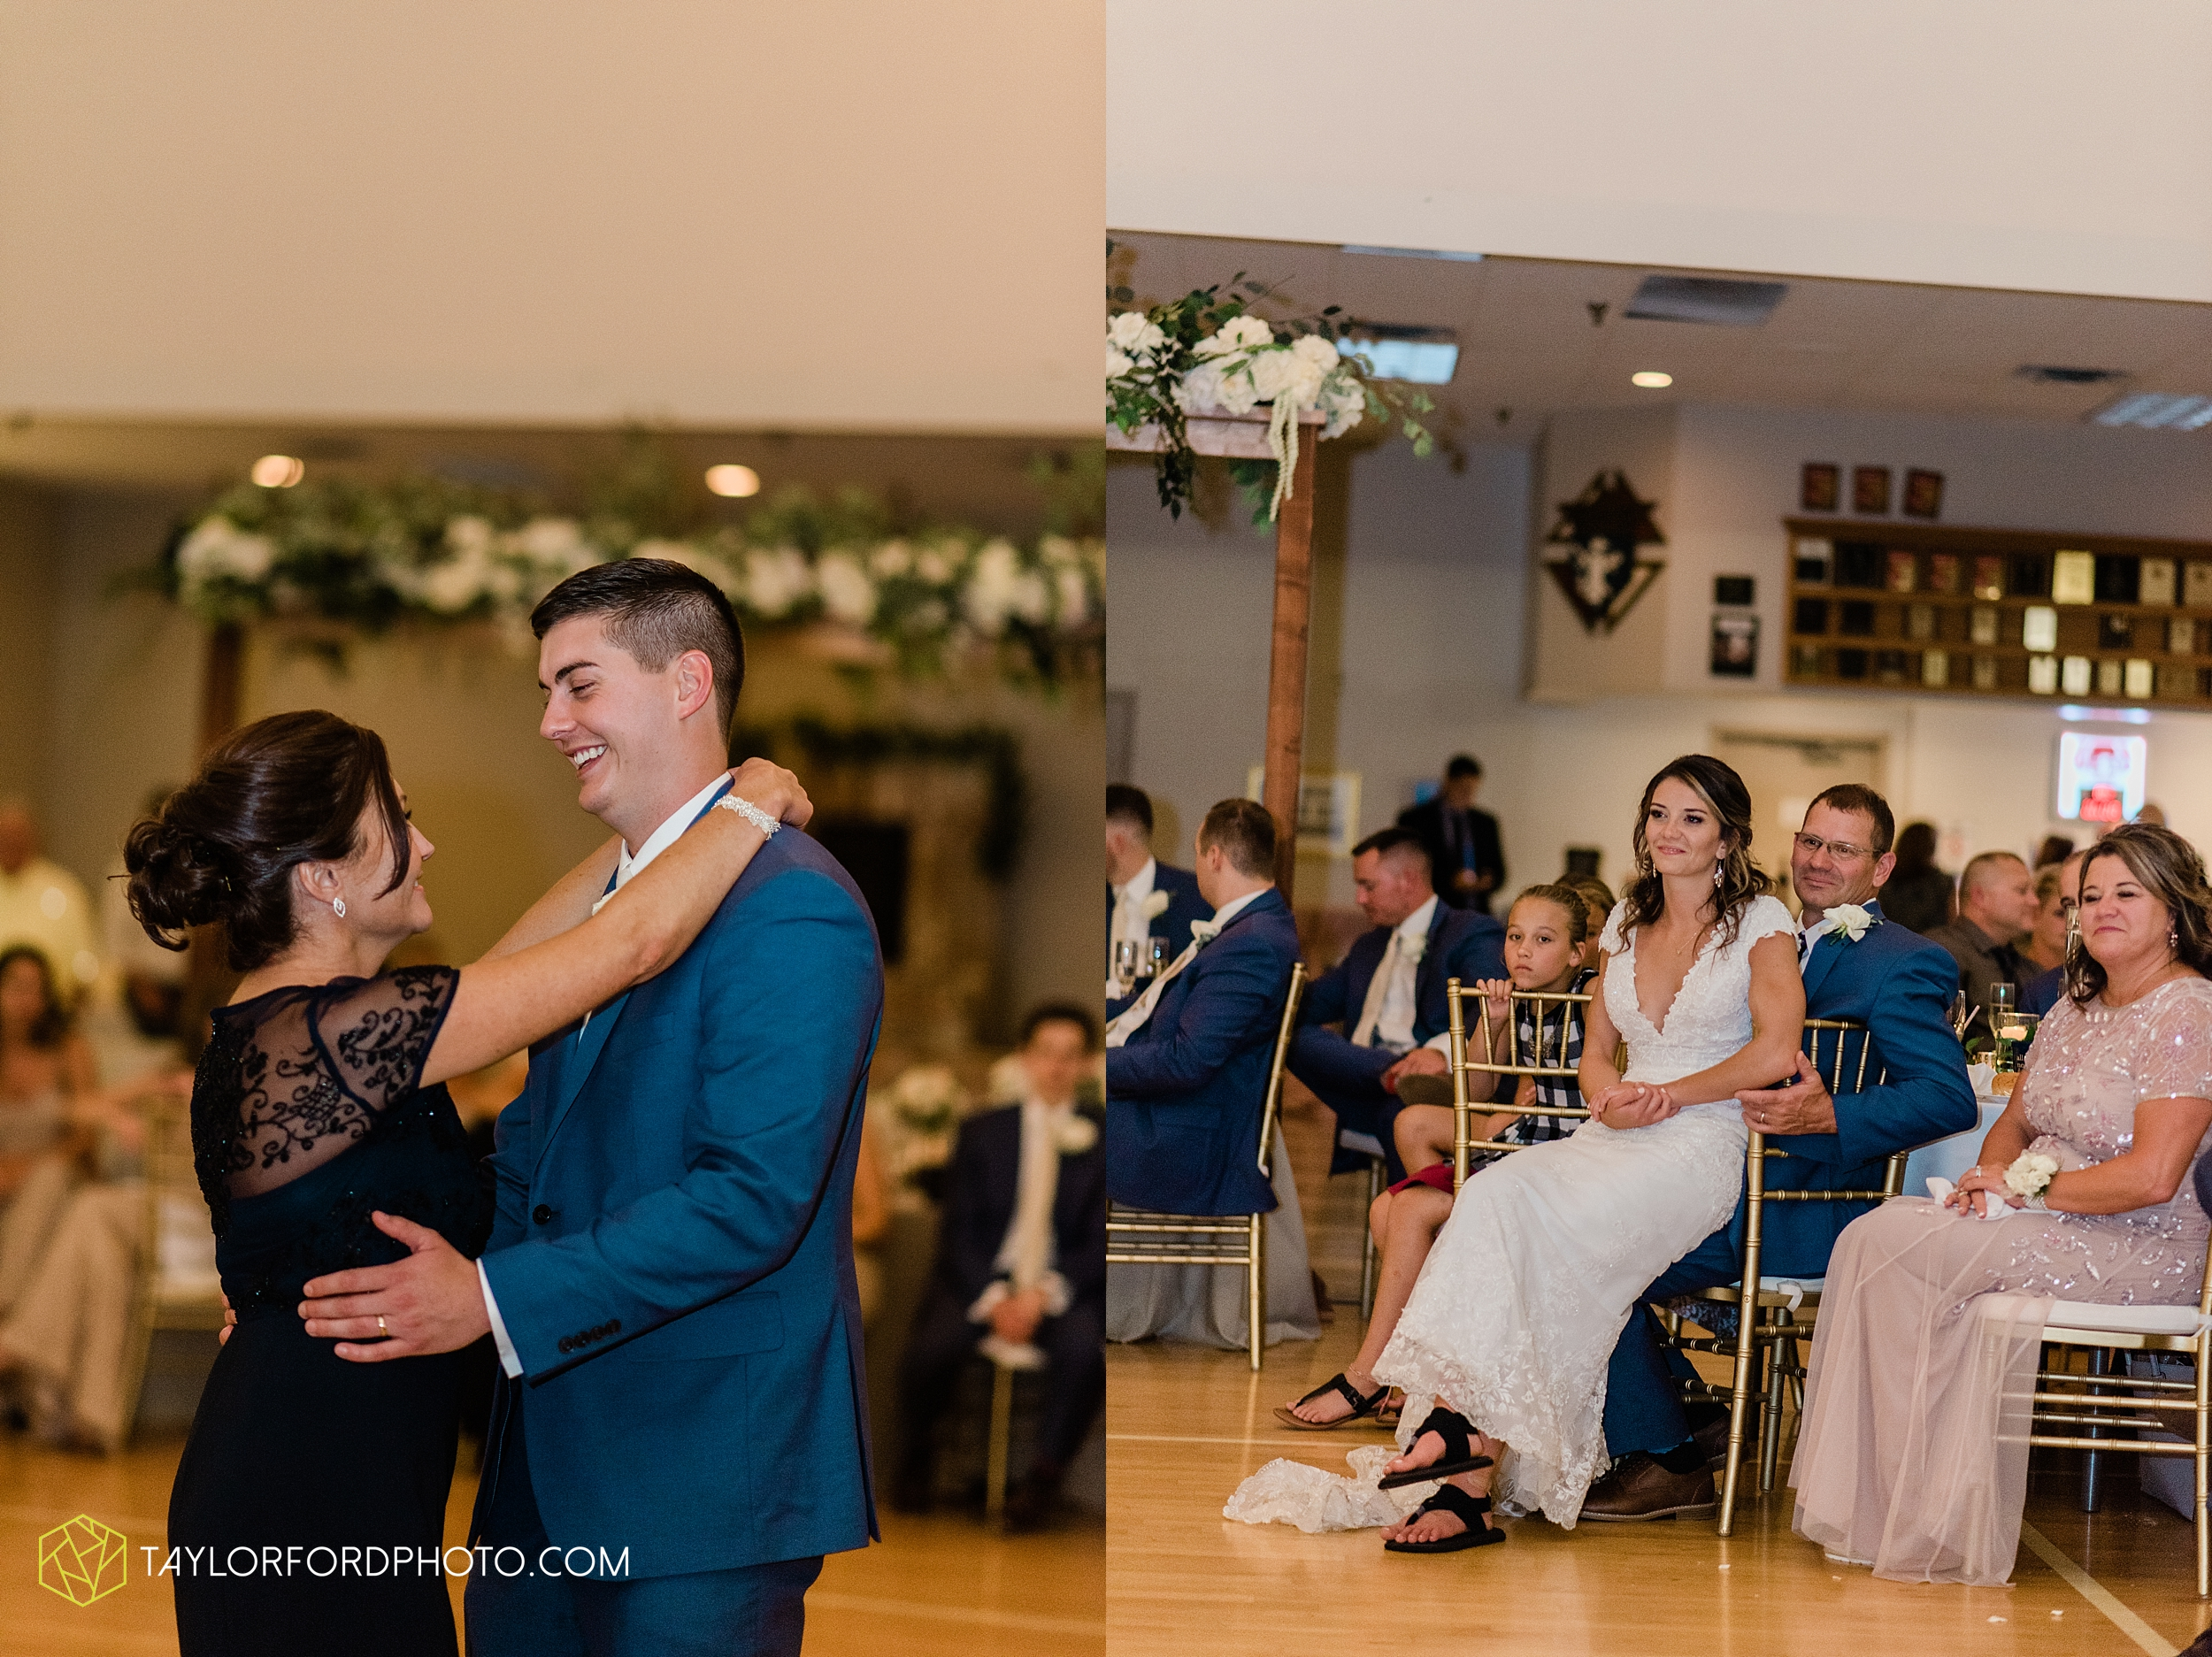 kacee-haden-sholl-second-story-saint-marys-knights-of-columbus-defiance-ohio-wedding-photographer-taylor-ford-photography_0196.jpg